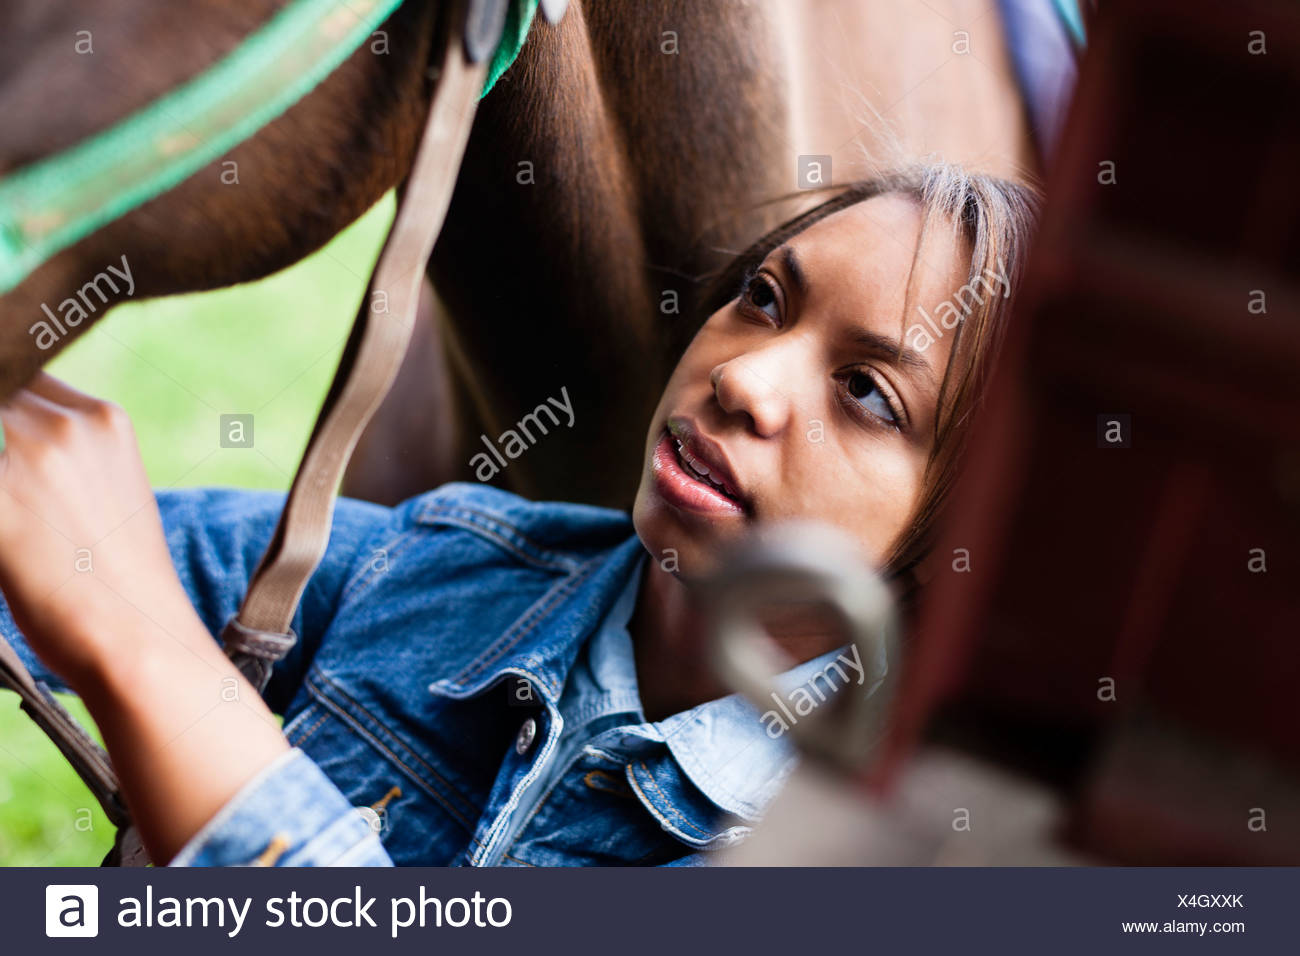 Rider grooming horse - Stock Image